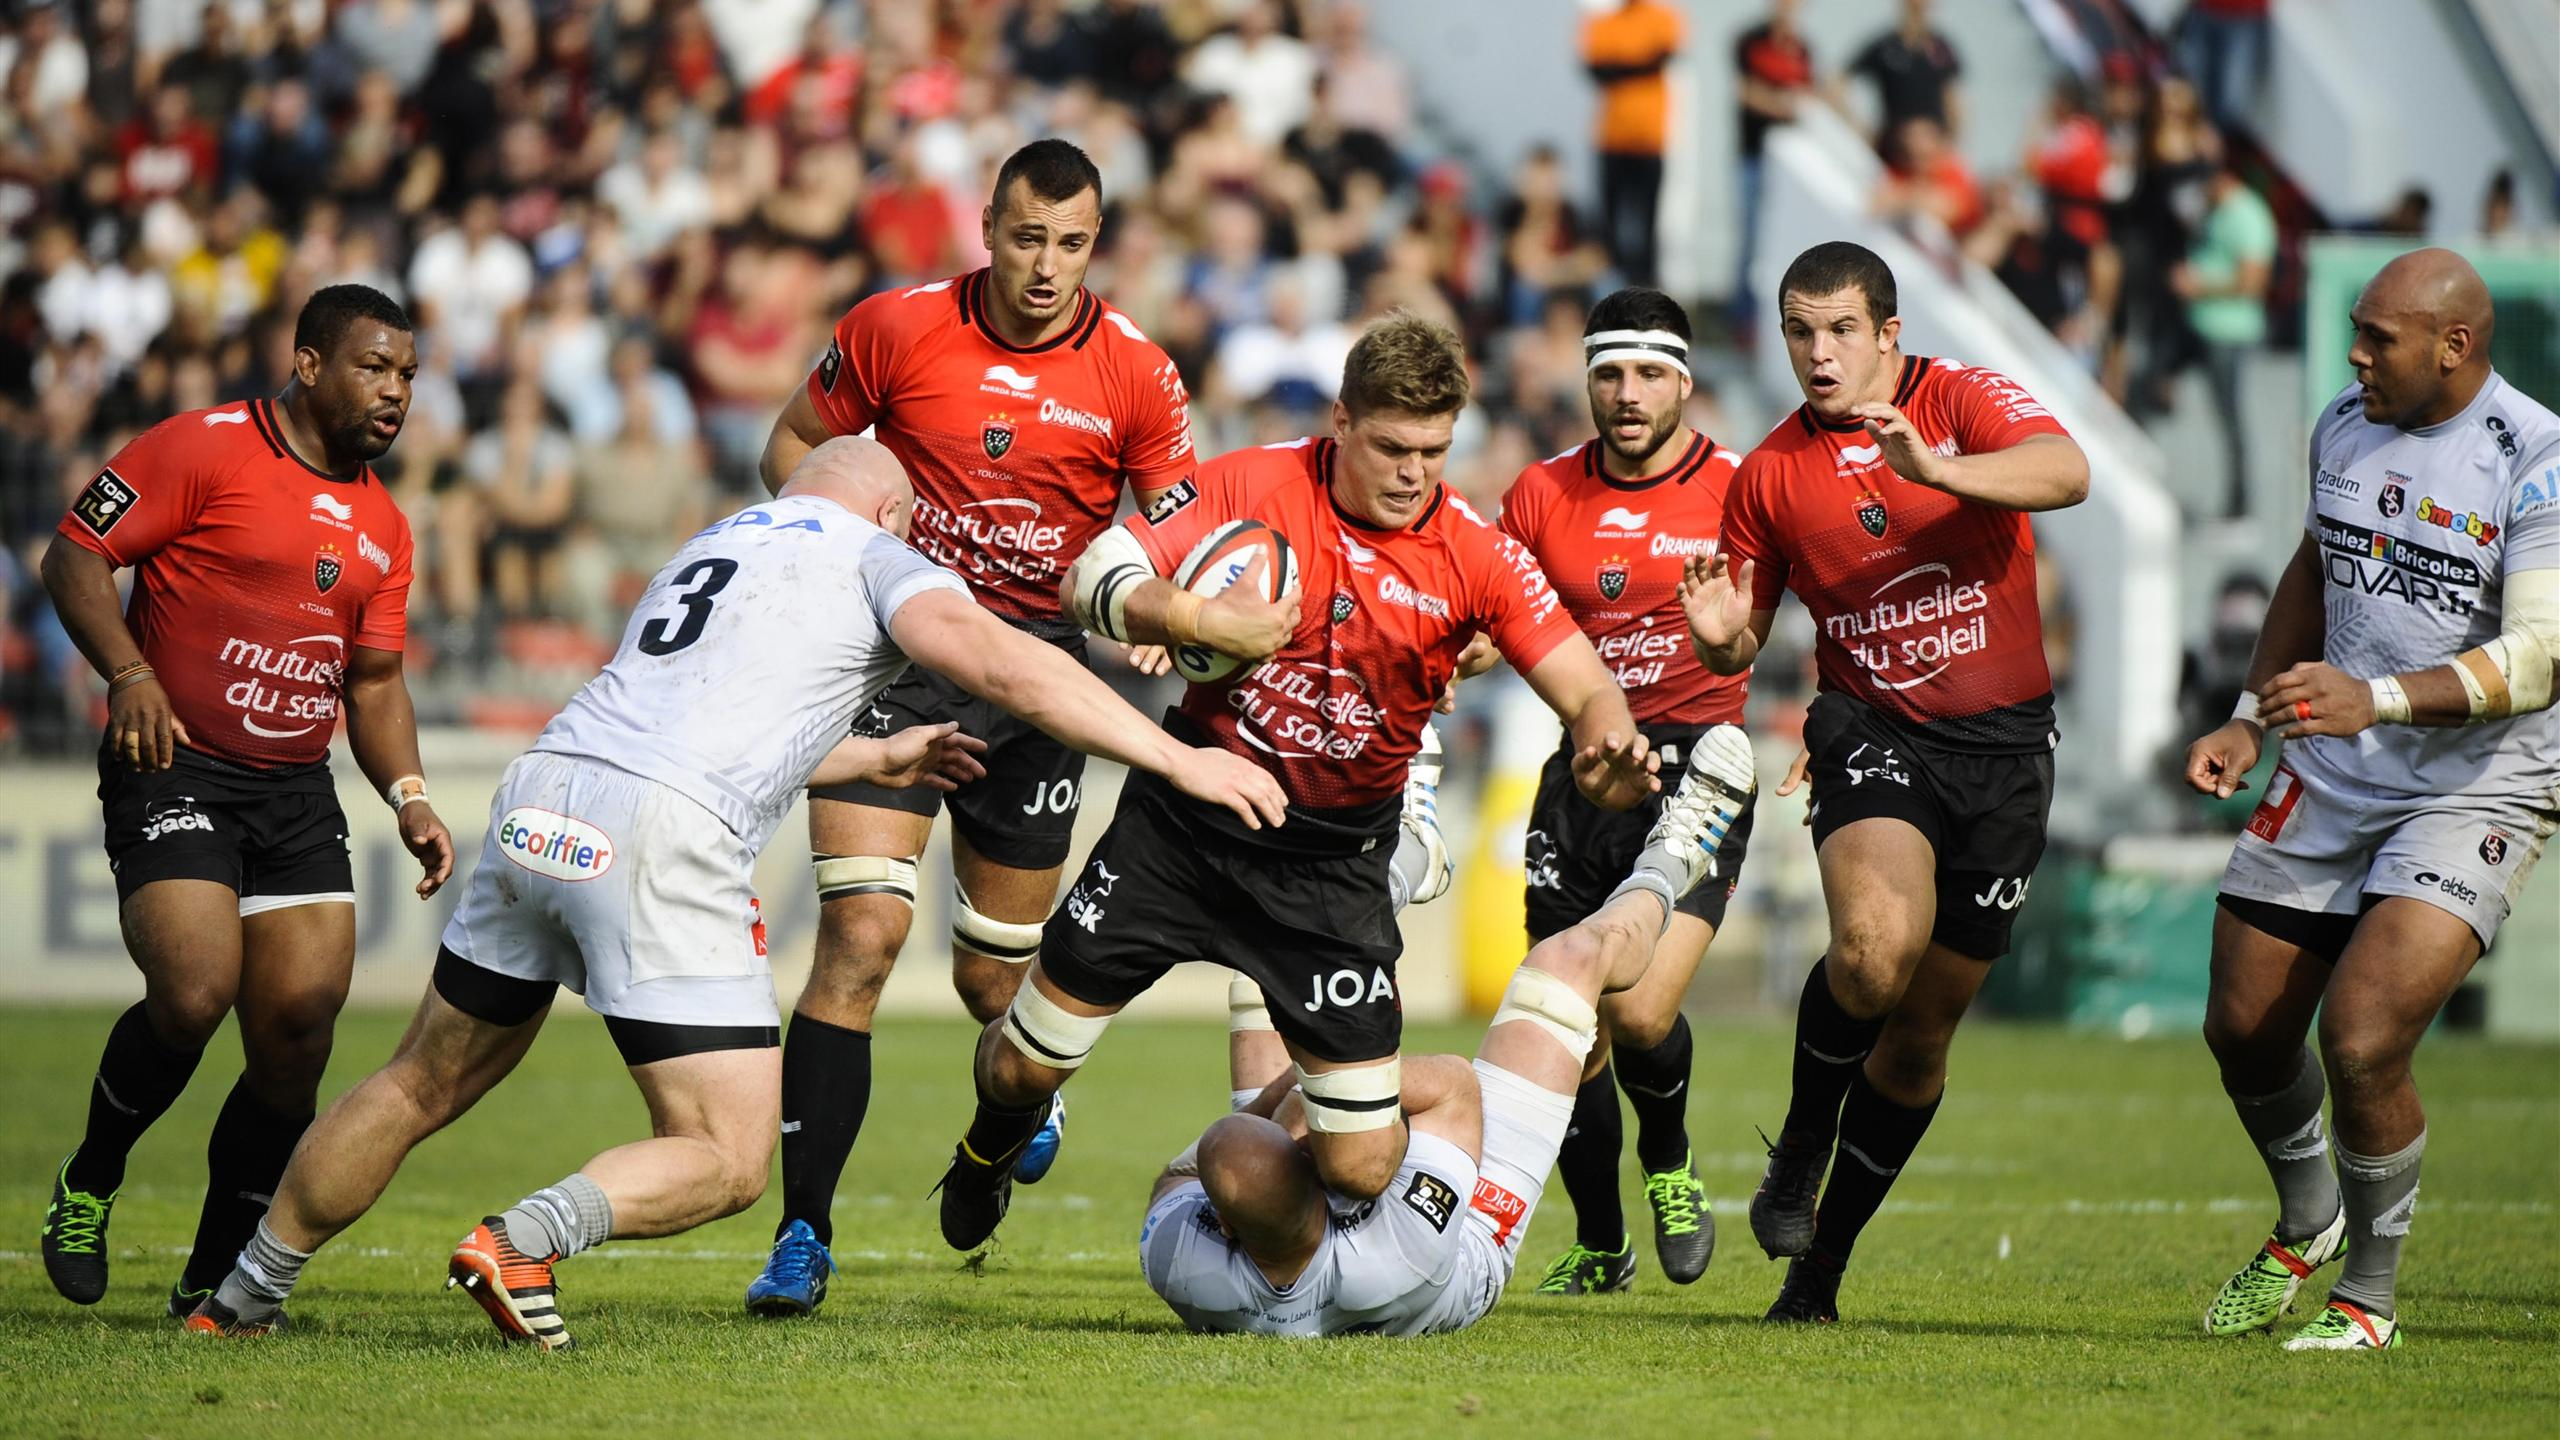 Juan Smith (Toulon) face à Oyonnax - 24 octobre 2015